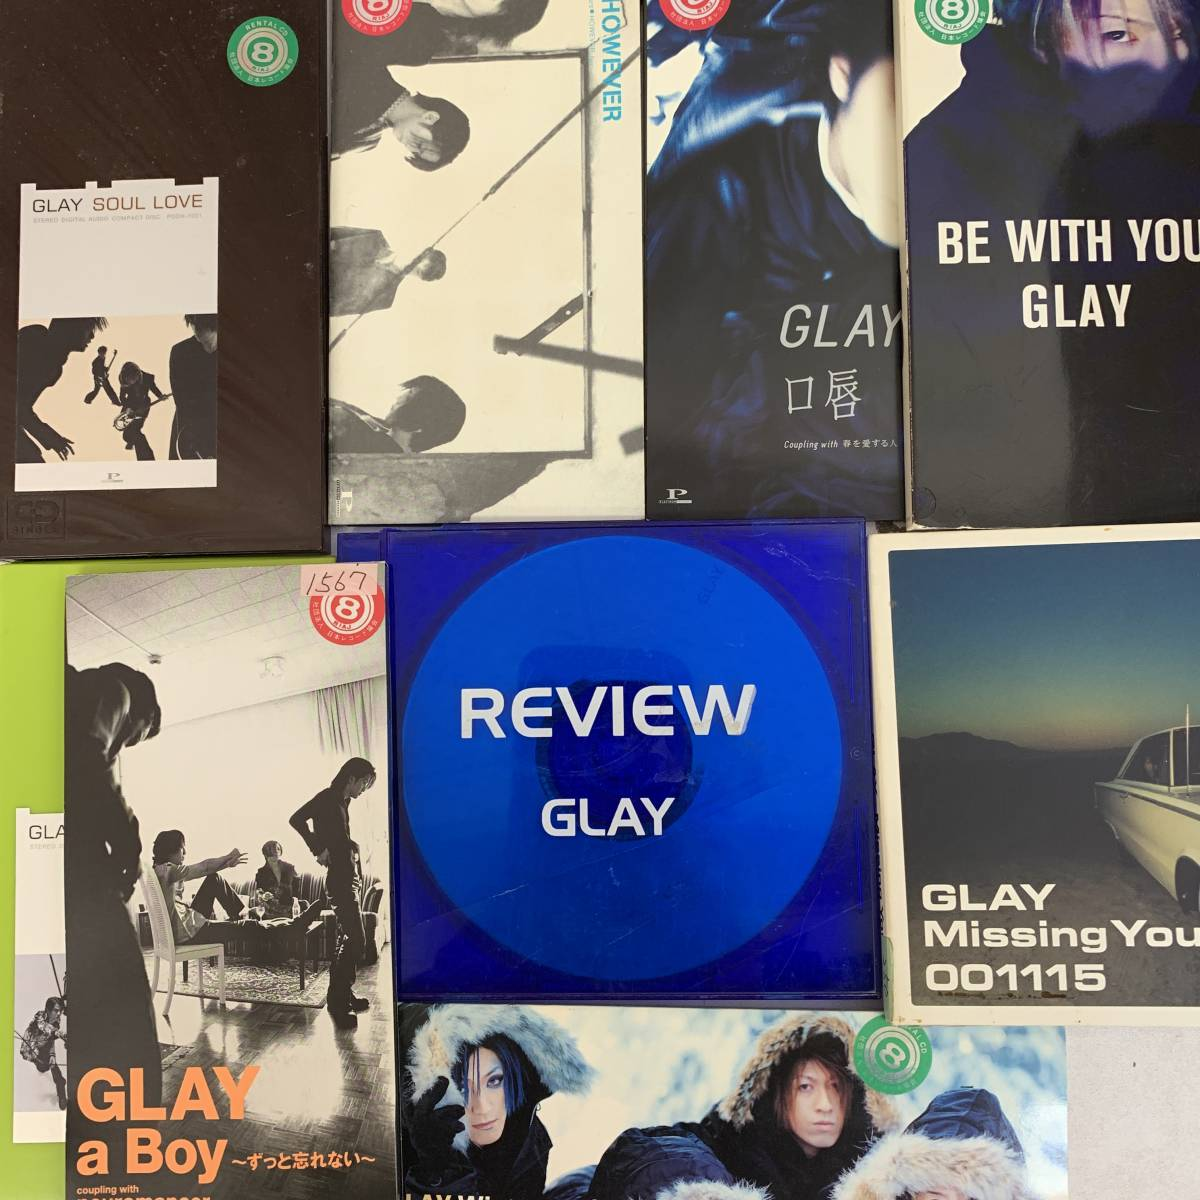 GLAY 口唇、REVIEW、Missing You、Soul Love、誘惑、a Boy、Winter,again、Be with You、However、9枚まとめて